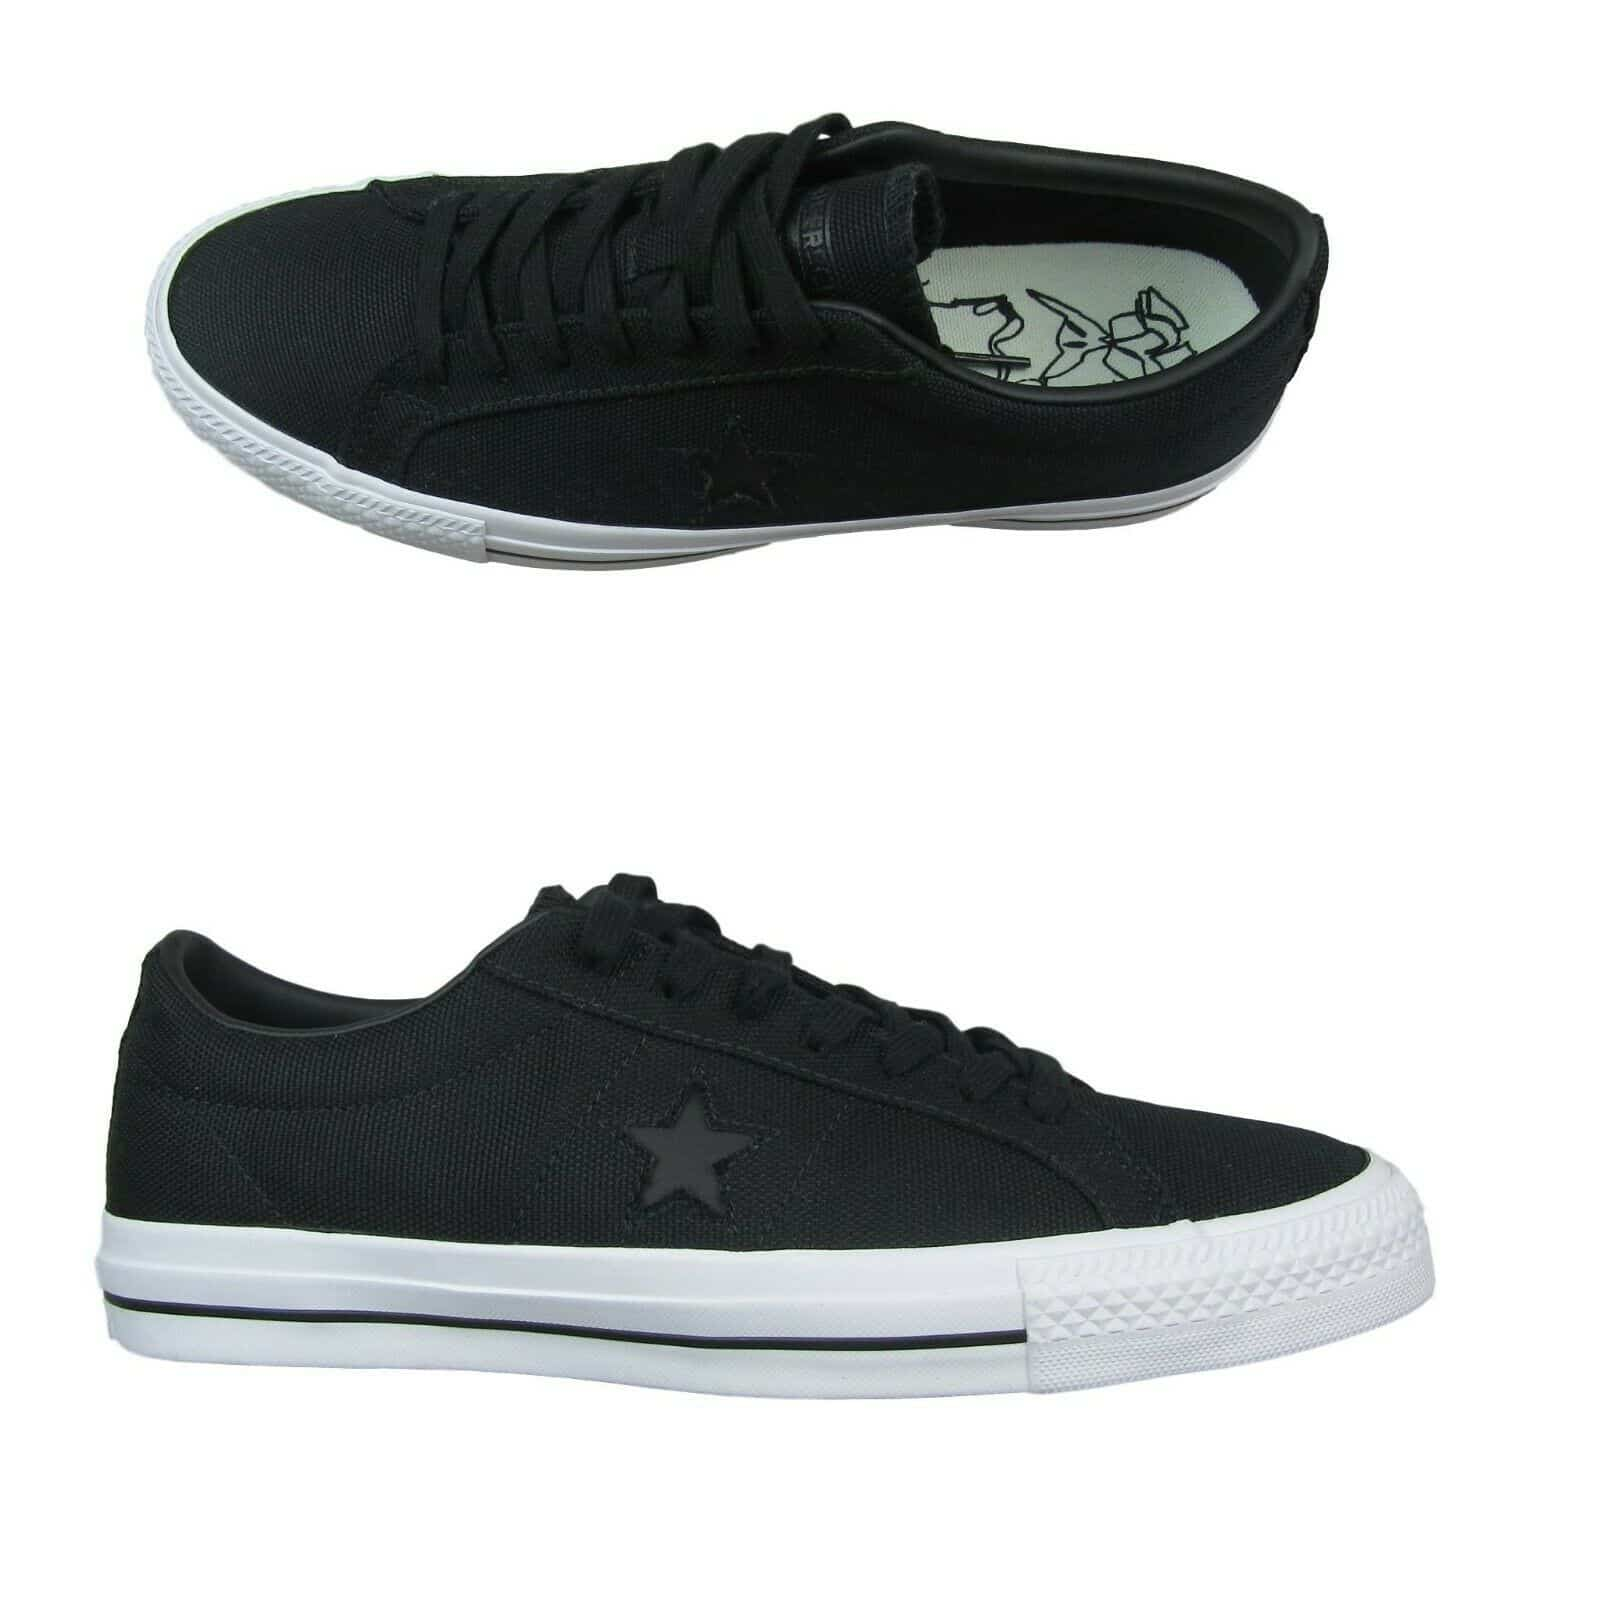 e4062cc5eee87e Converse One Star Pro OX Mike Anderson Size 9.5 Mens Skate Shoes ...